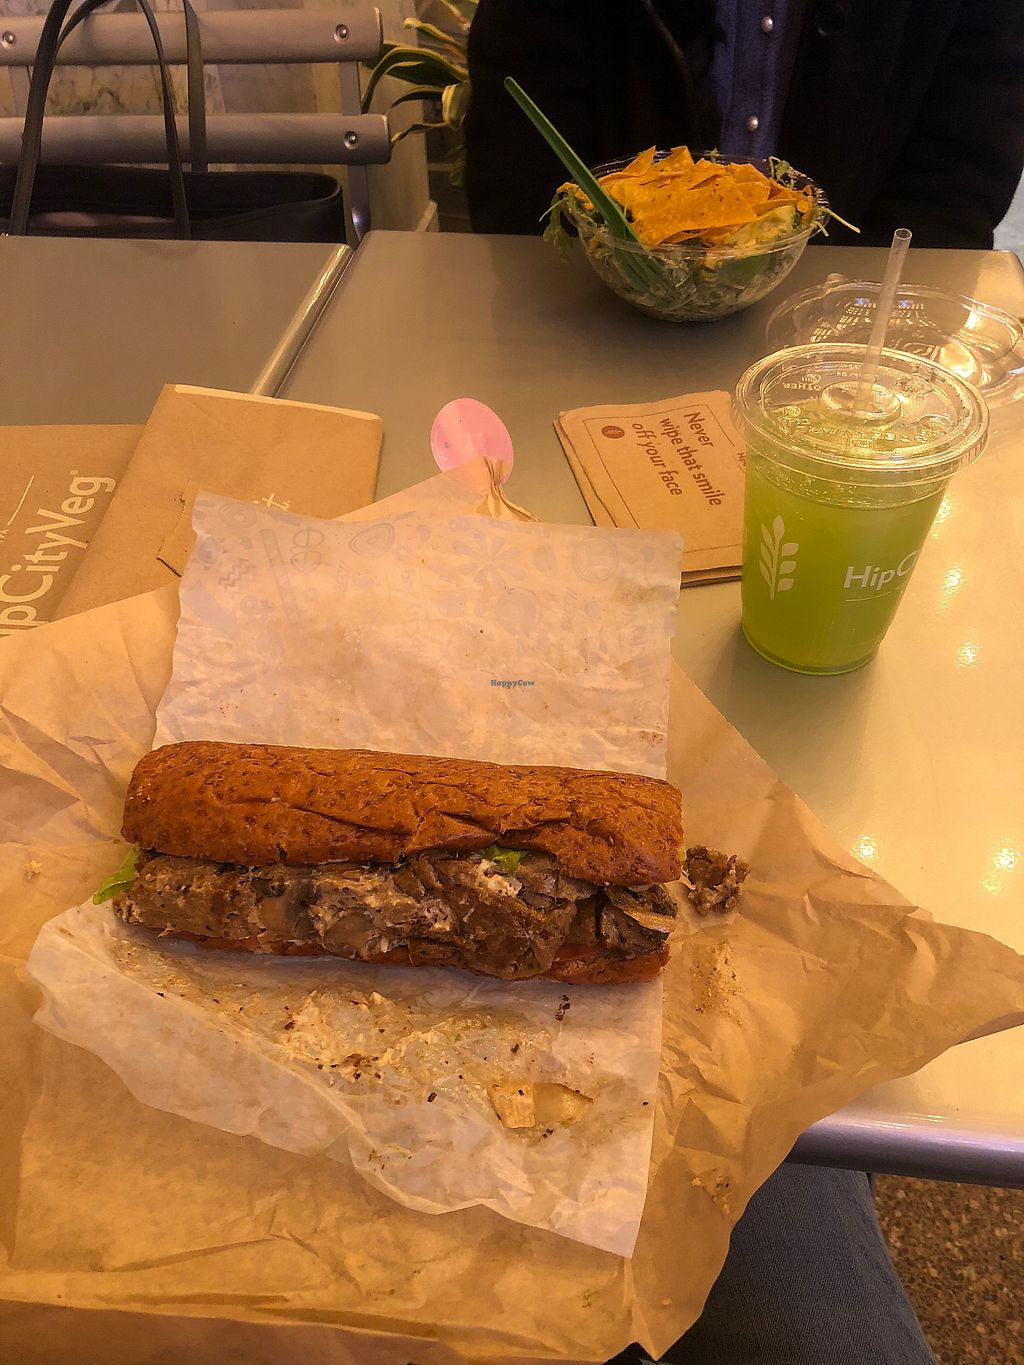 """Photo of HipCityVeg - Broad St  by <a href=""""/members/profile/MaggieZarlengo"""">MaggieZarlengo</a> <br/>Cheesesteak and kale lemonade <br/> January 14, 2018  - <a href='/contact/abuse/image/84195/346586'>Report</a>"""